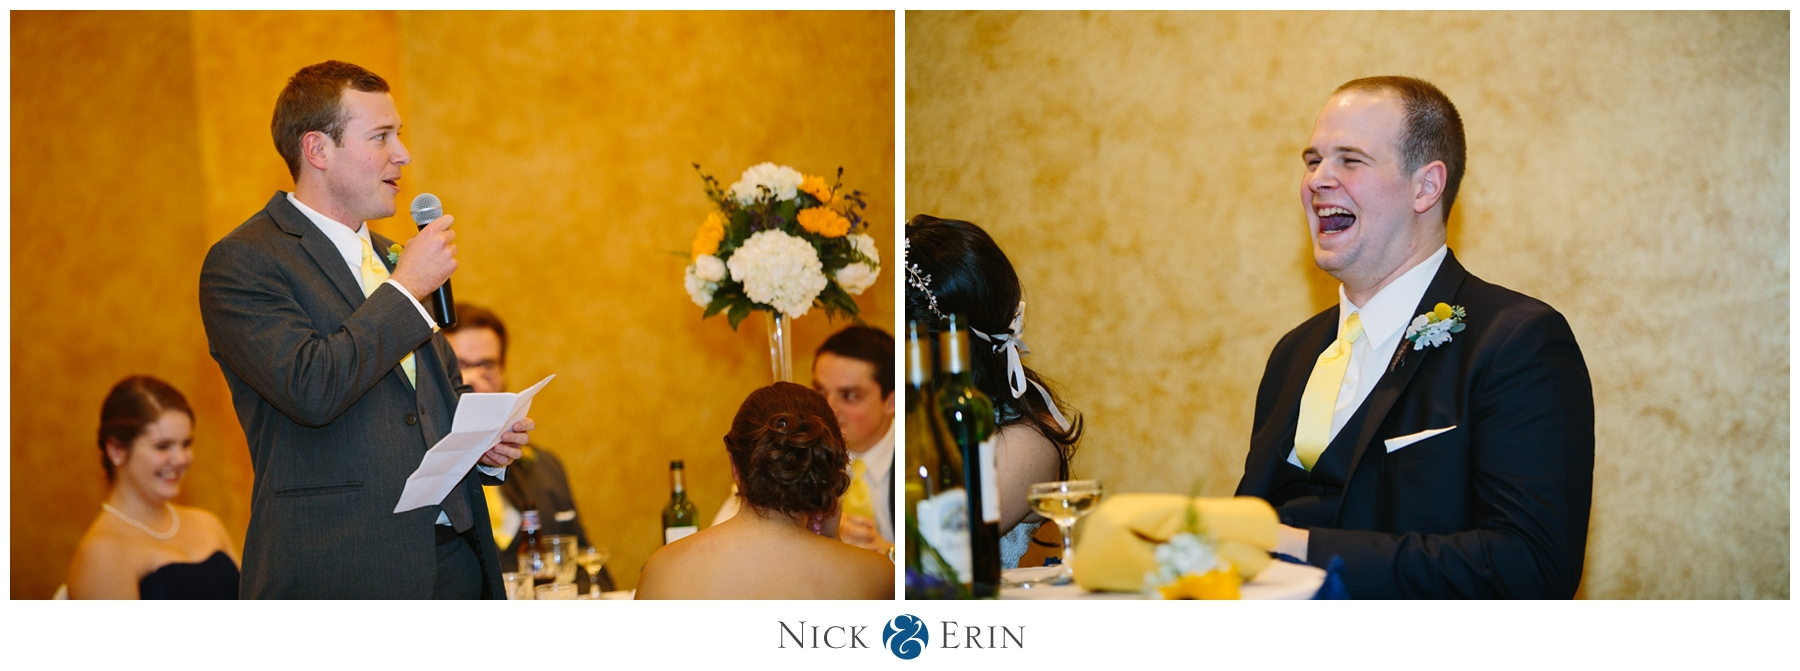 Donner_Photography_Fort Myer Wedding_Katie & Will_0047a